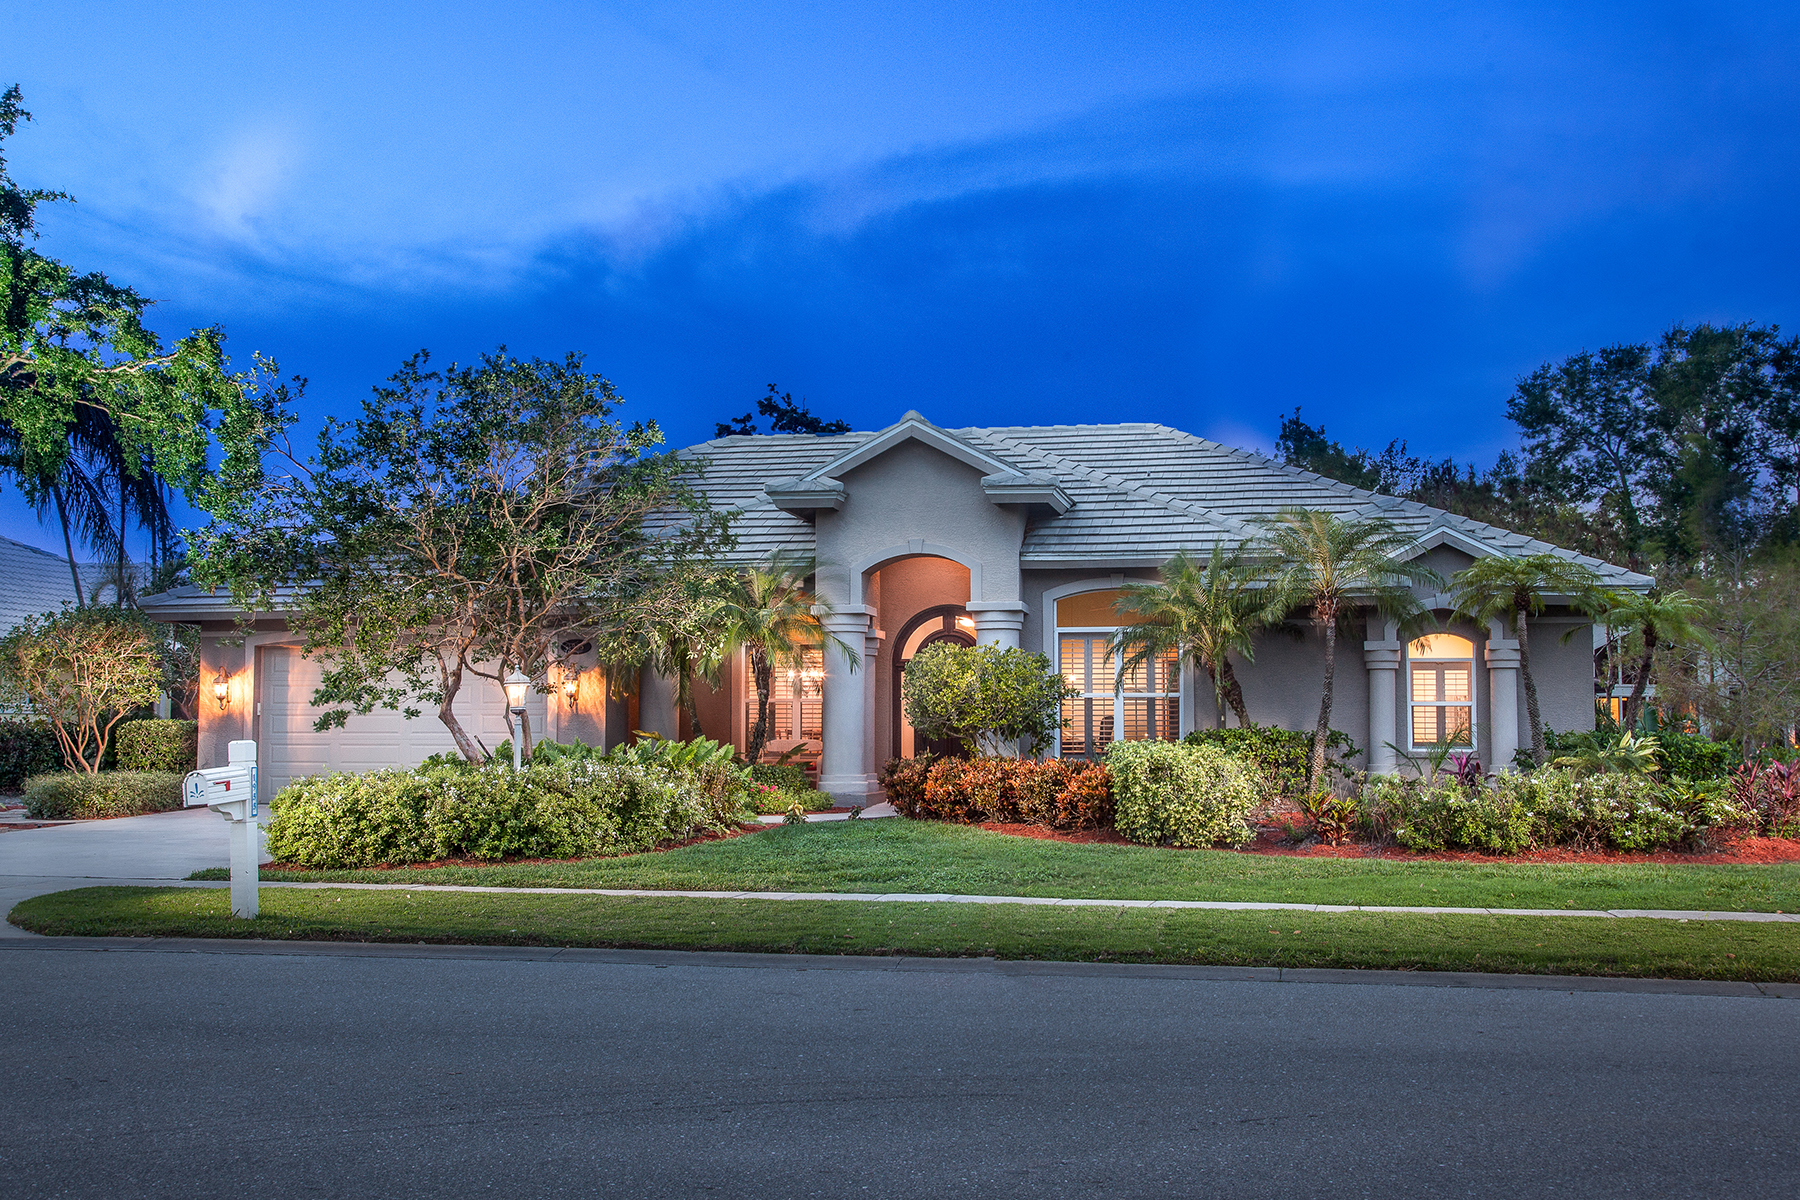 Single Family Home for Sale at MONTEREY-MONTEREY 1955 Mission Dr, Naples, Florida 34109 United States